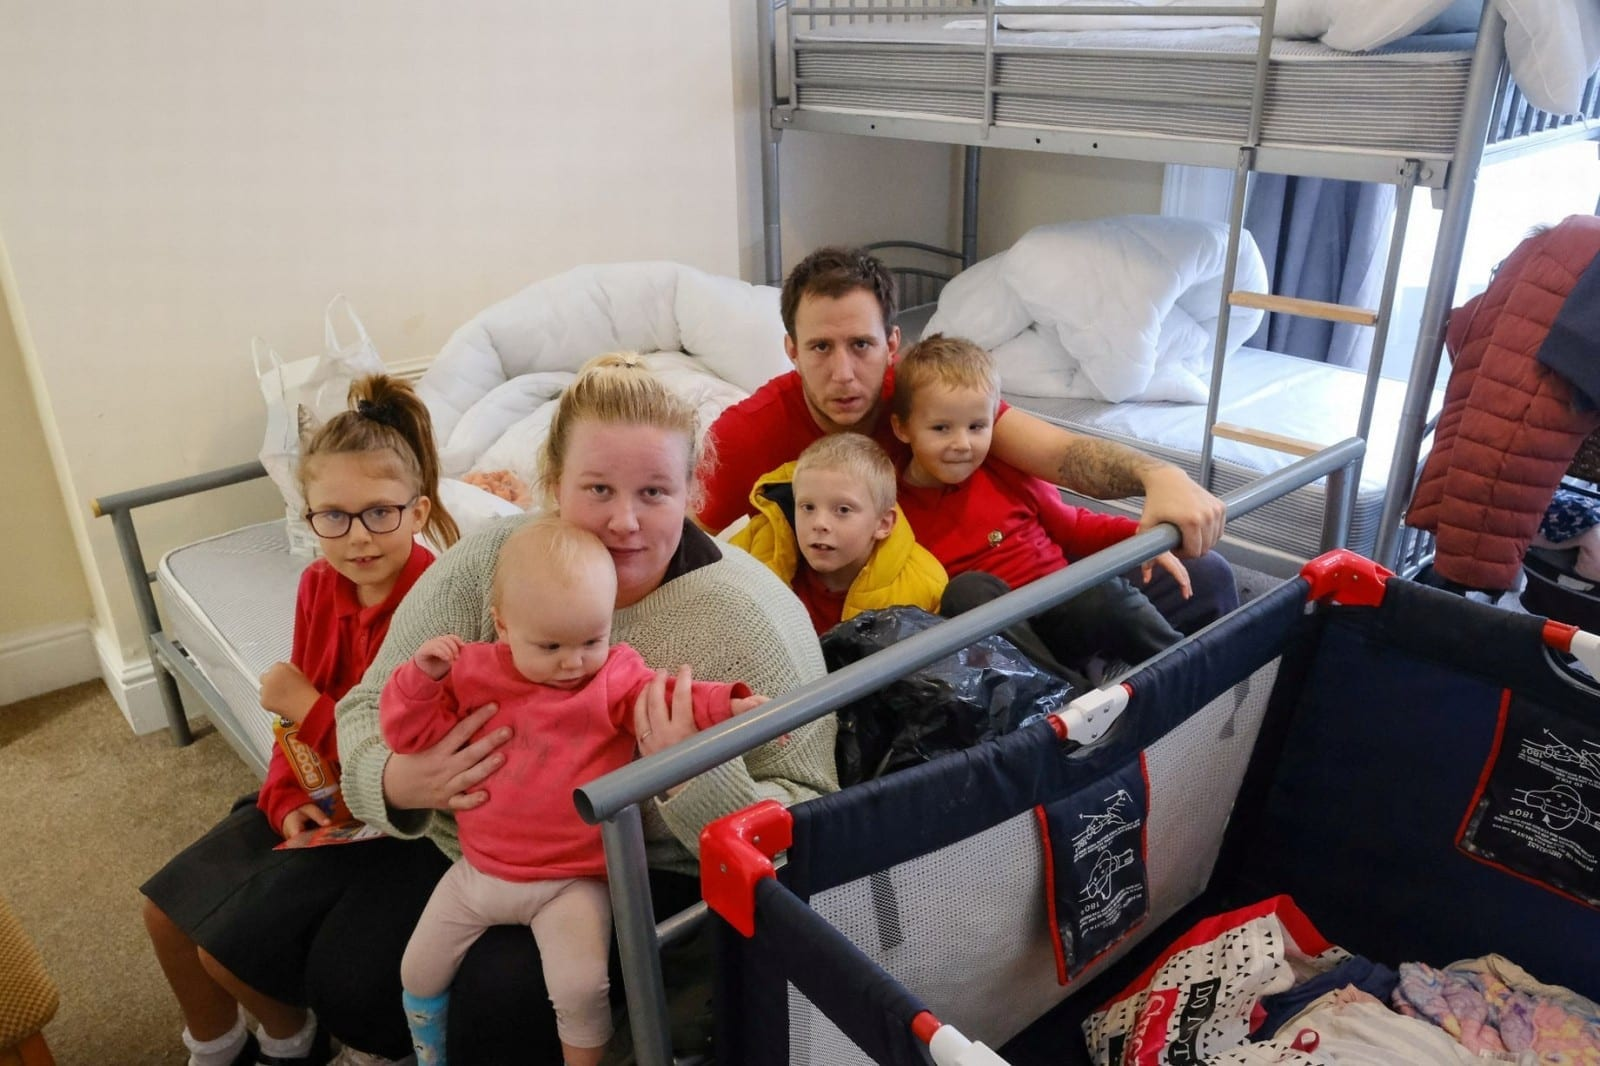 Family Of Six With Disabled Child Left Living In One